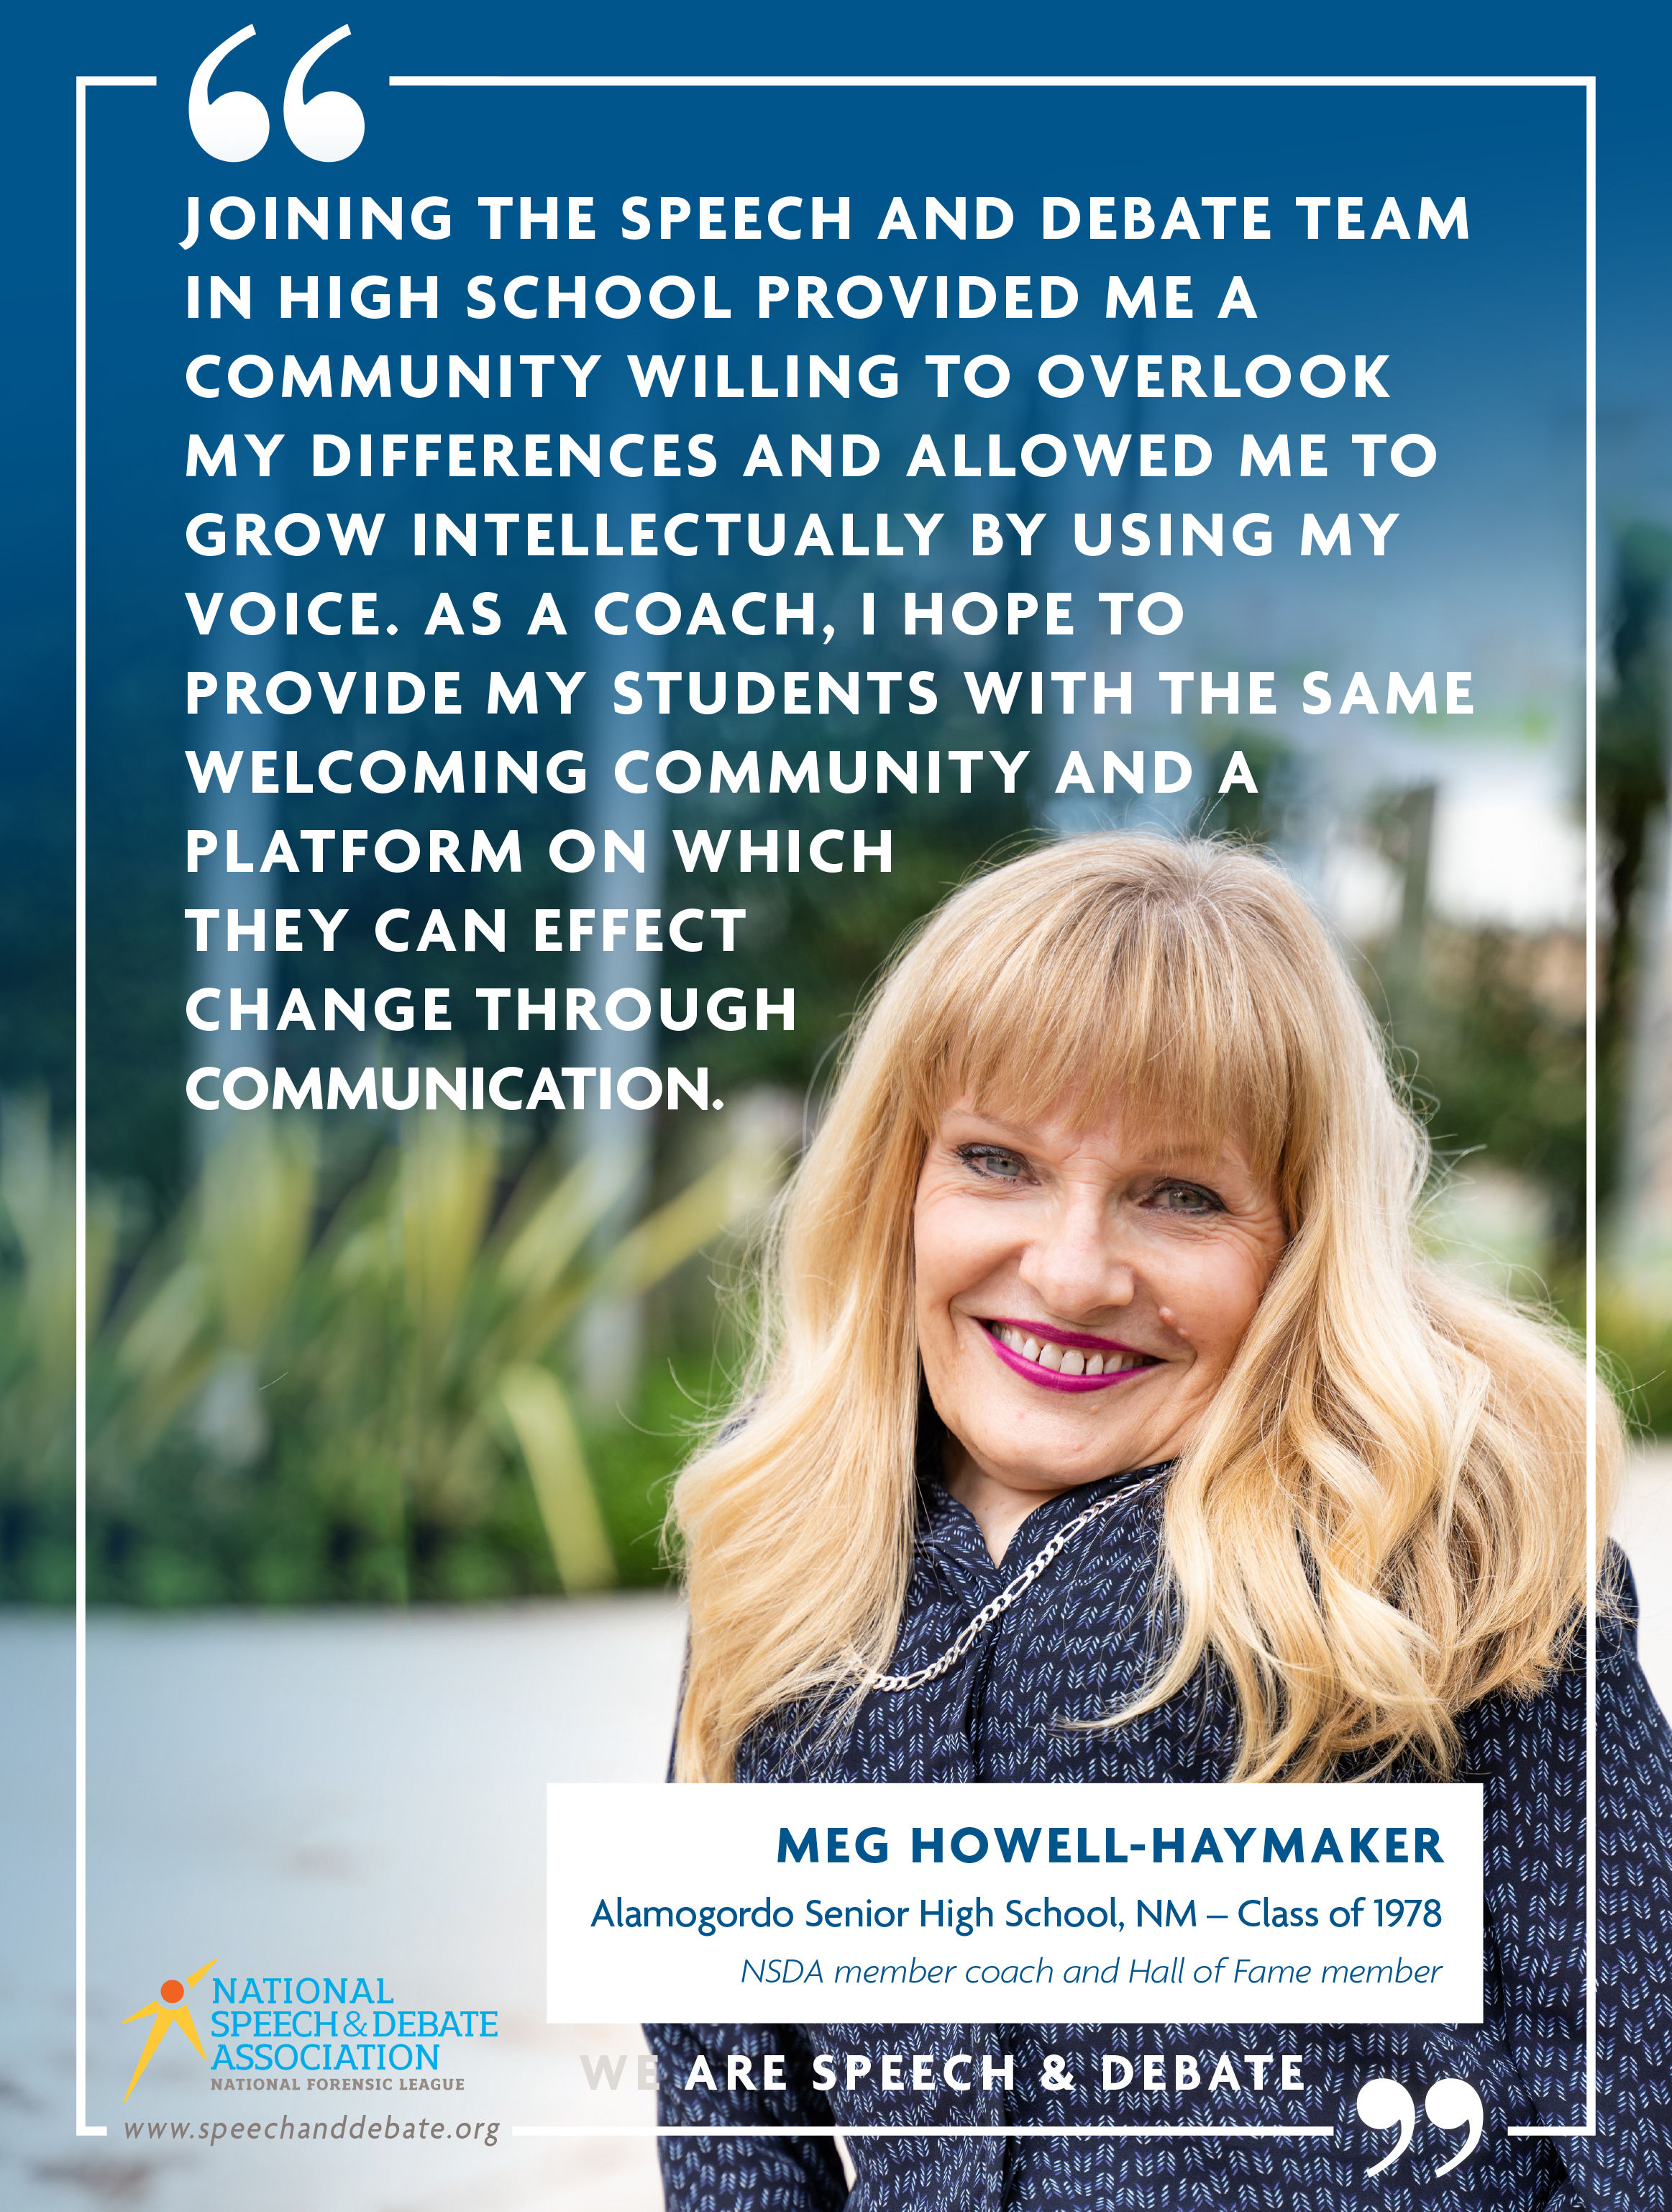 """JOINING THE SPEECH AND DEBATE TEAM IN HIGH SCHOOL PROVIDED ME A COMMUNITY WILLING TO OVERLOOK MY DIFFERENCES AND ALLOWED ME TO GROW INTELLECTUALLY BY USING MY VOICE. AS A COACH, I HOPE TO PROVIDE MY STUDENTS WITH THE SAME WELCOMING COMMUNITY AND A PLATFORM ON WHICH THEY CAN EFFECT CHANGE THROUGH COMMUNICATION."" - Meg Howell-Haymaker"